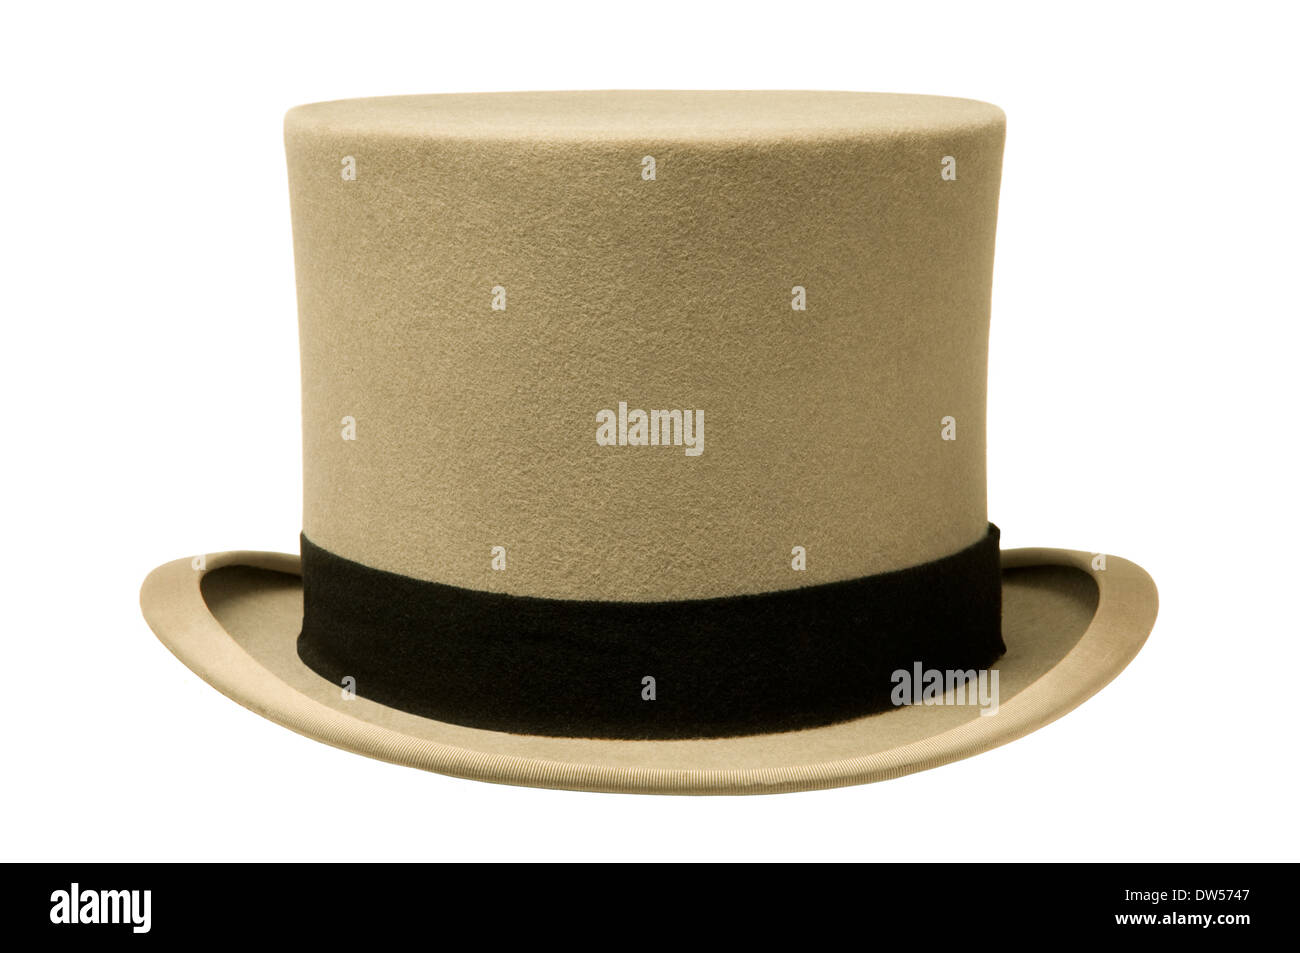 Vintage gray top hat against white background - Stock Image